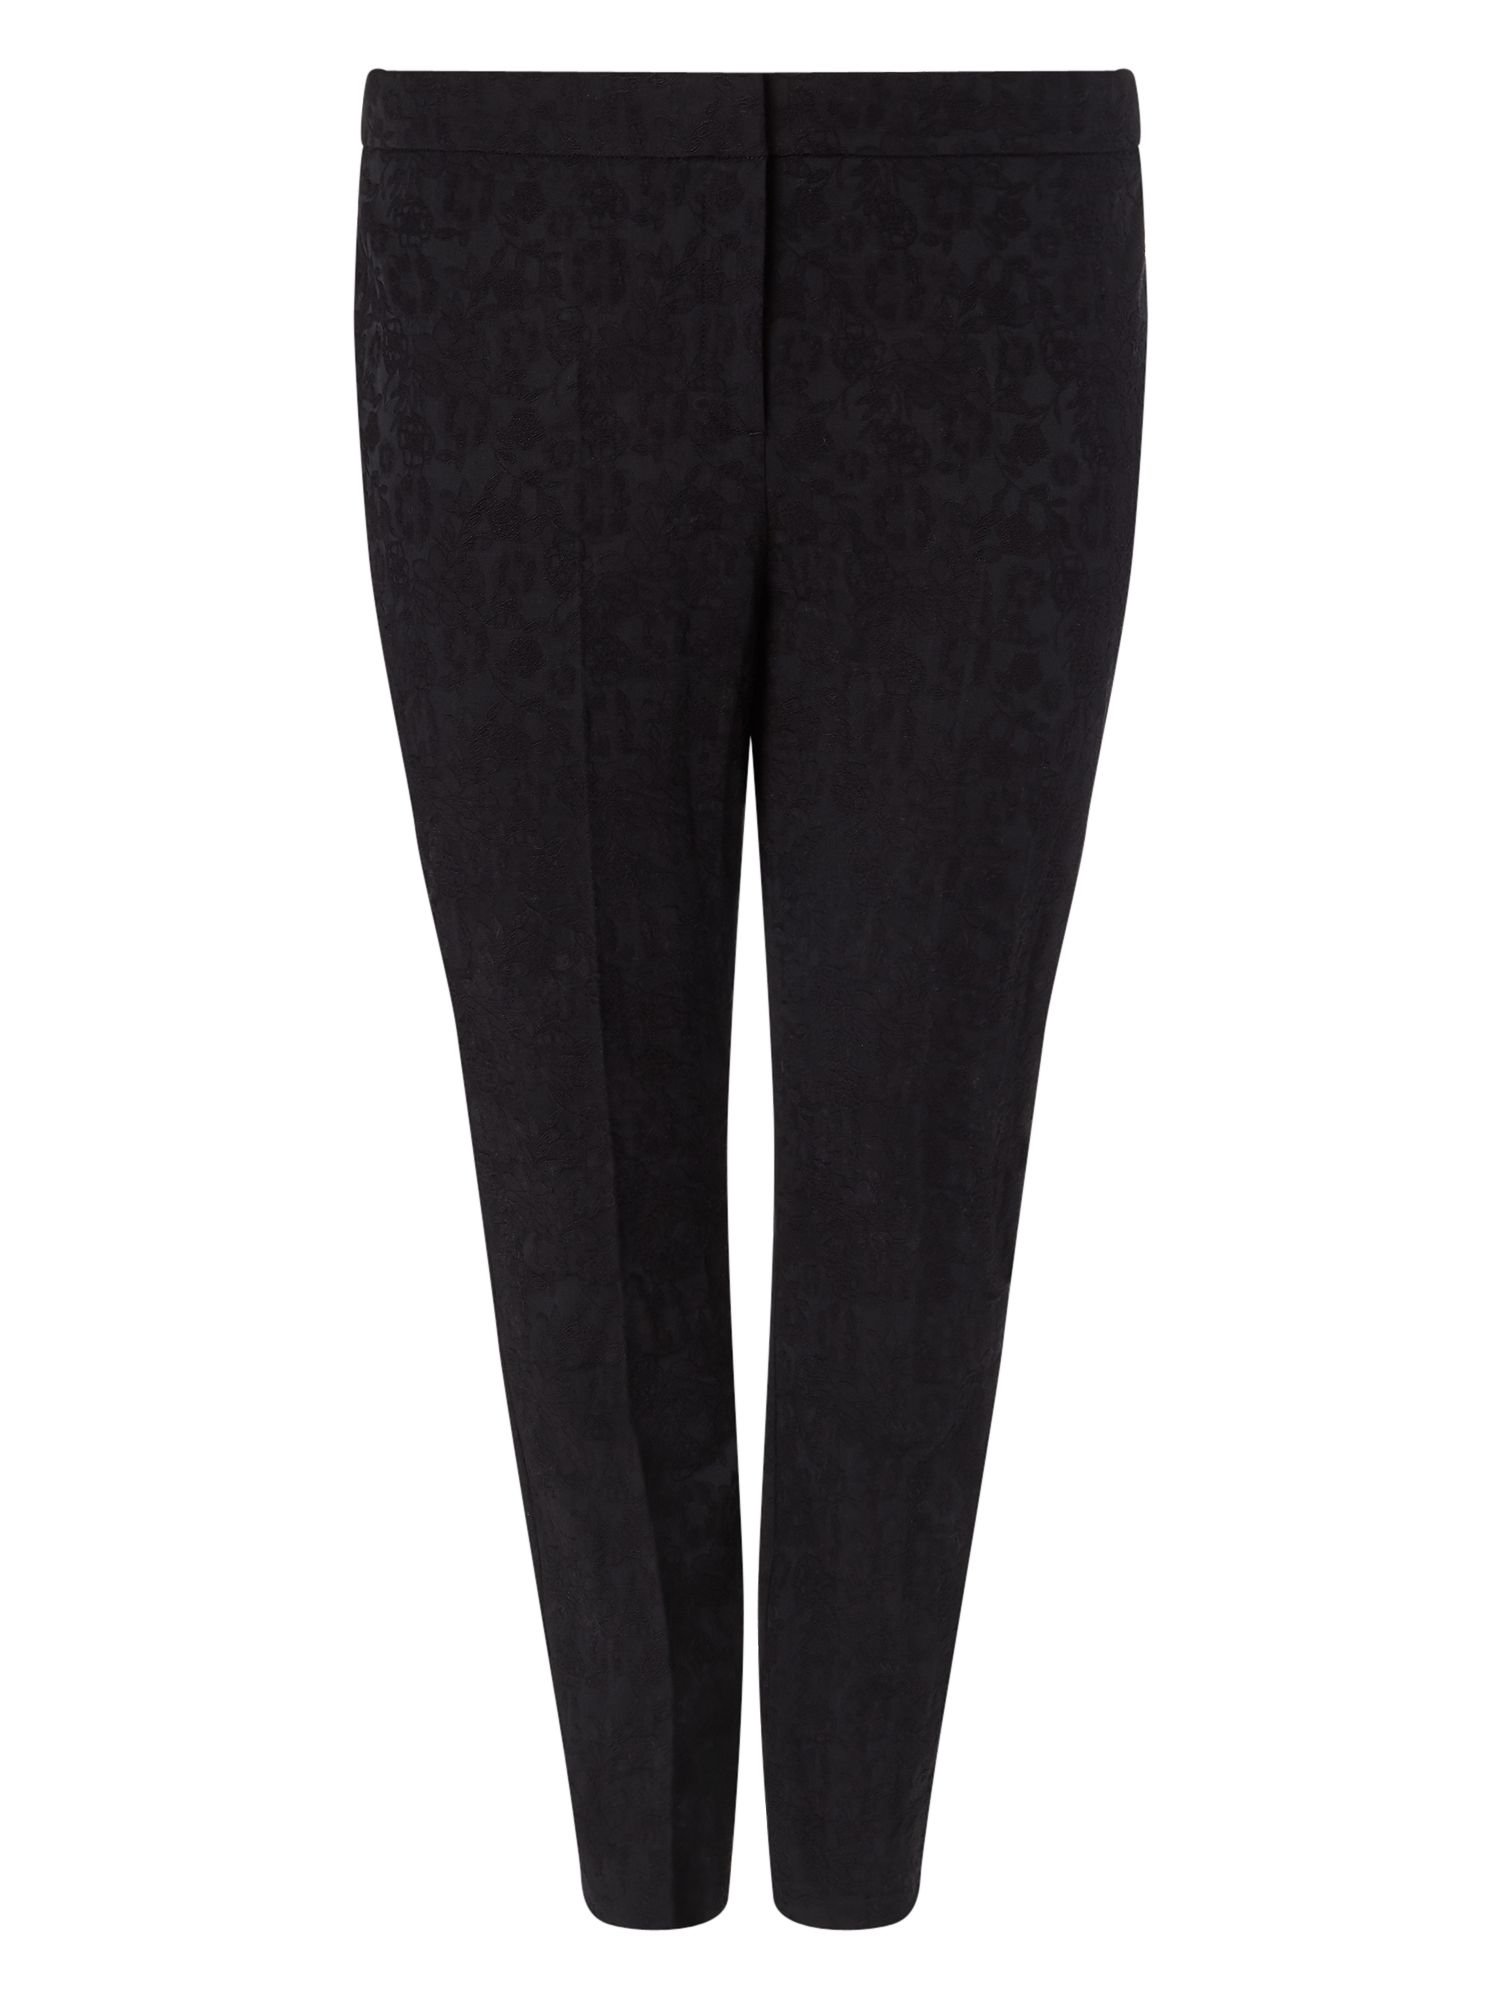 Studio 8 Darina trouser, Black